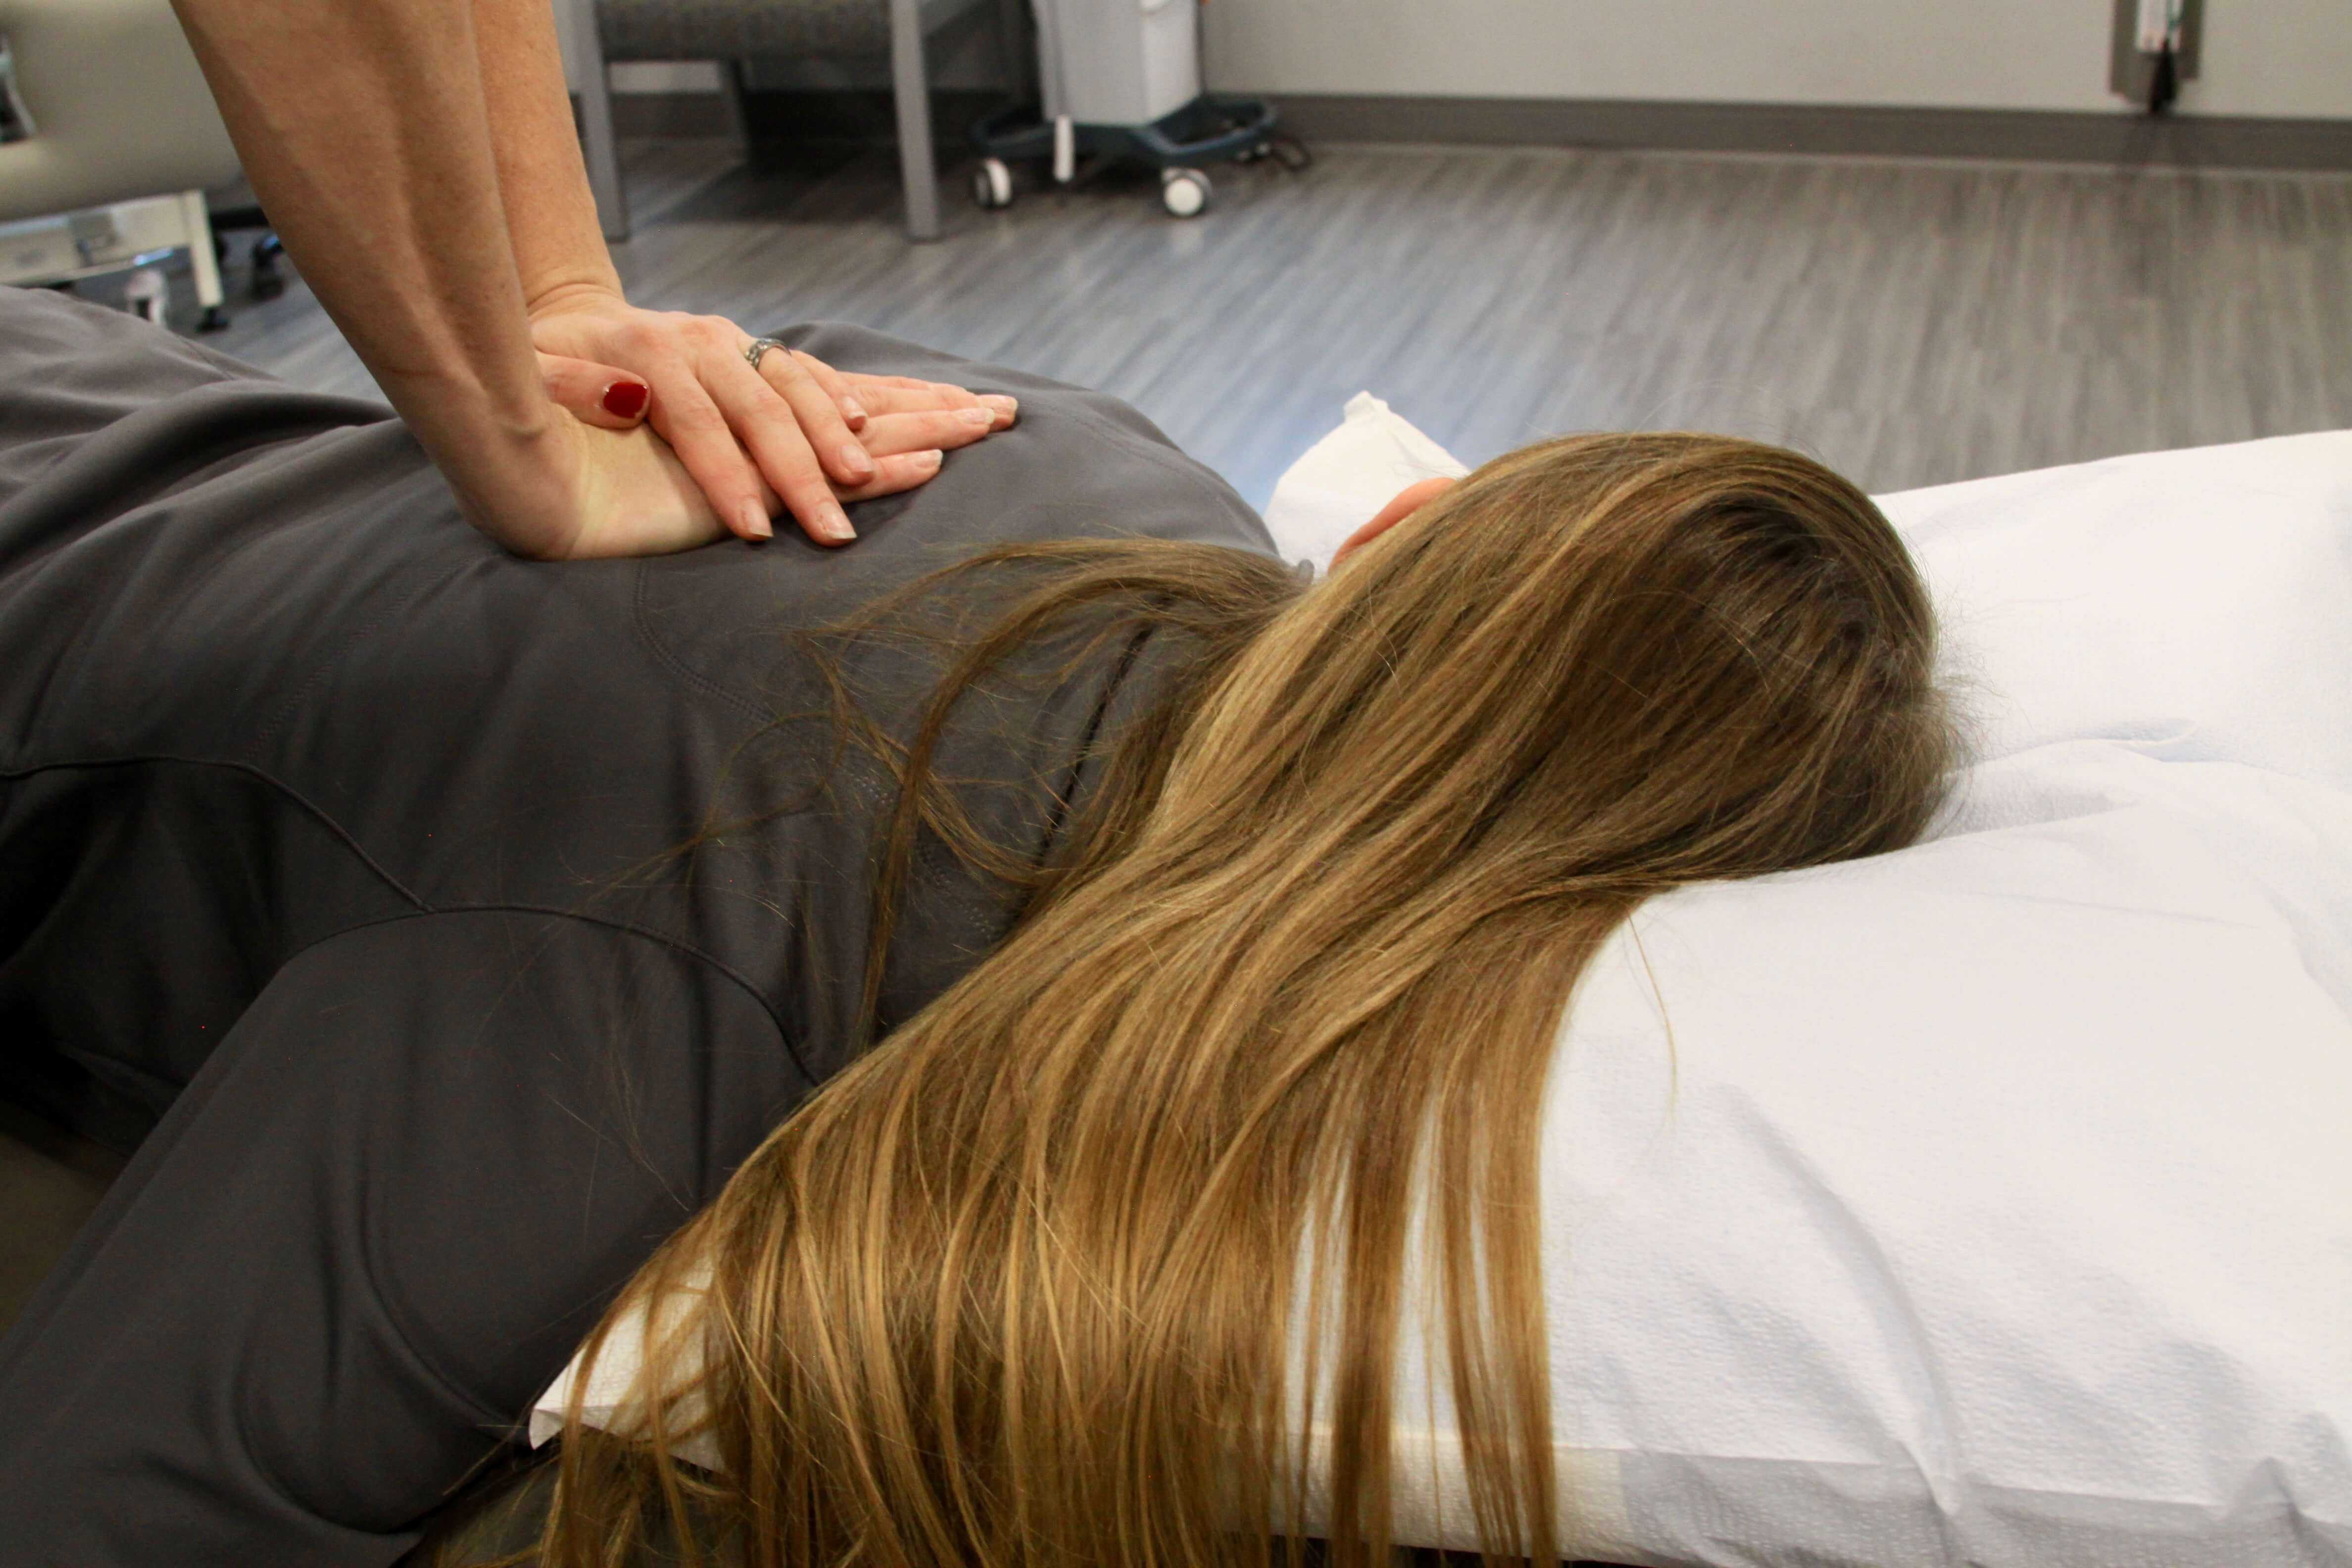 Woman laying on stomach while physical therapist works on her back.